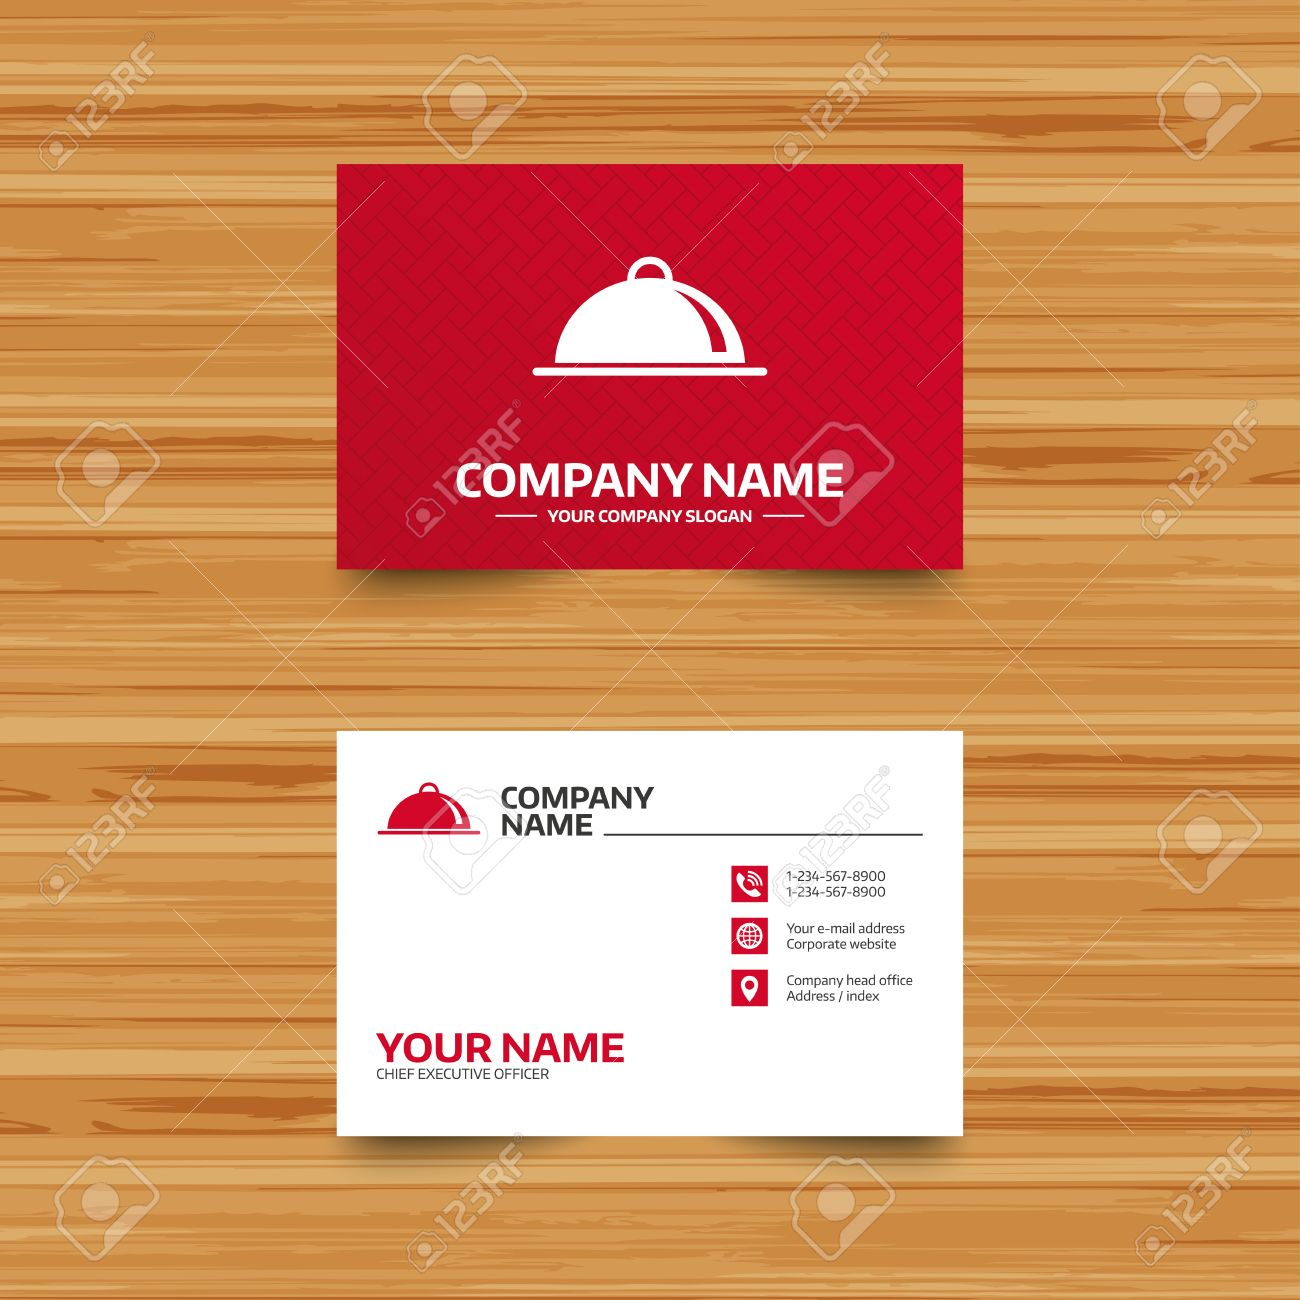 Business card template food platter serving sign icon table business card template food platter serving sign icon table setting in restaurant symbol cheaphphosting Image collections